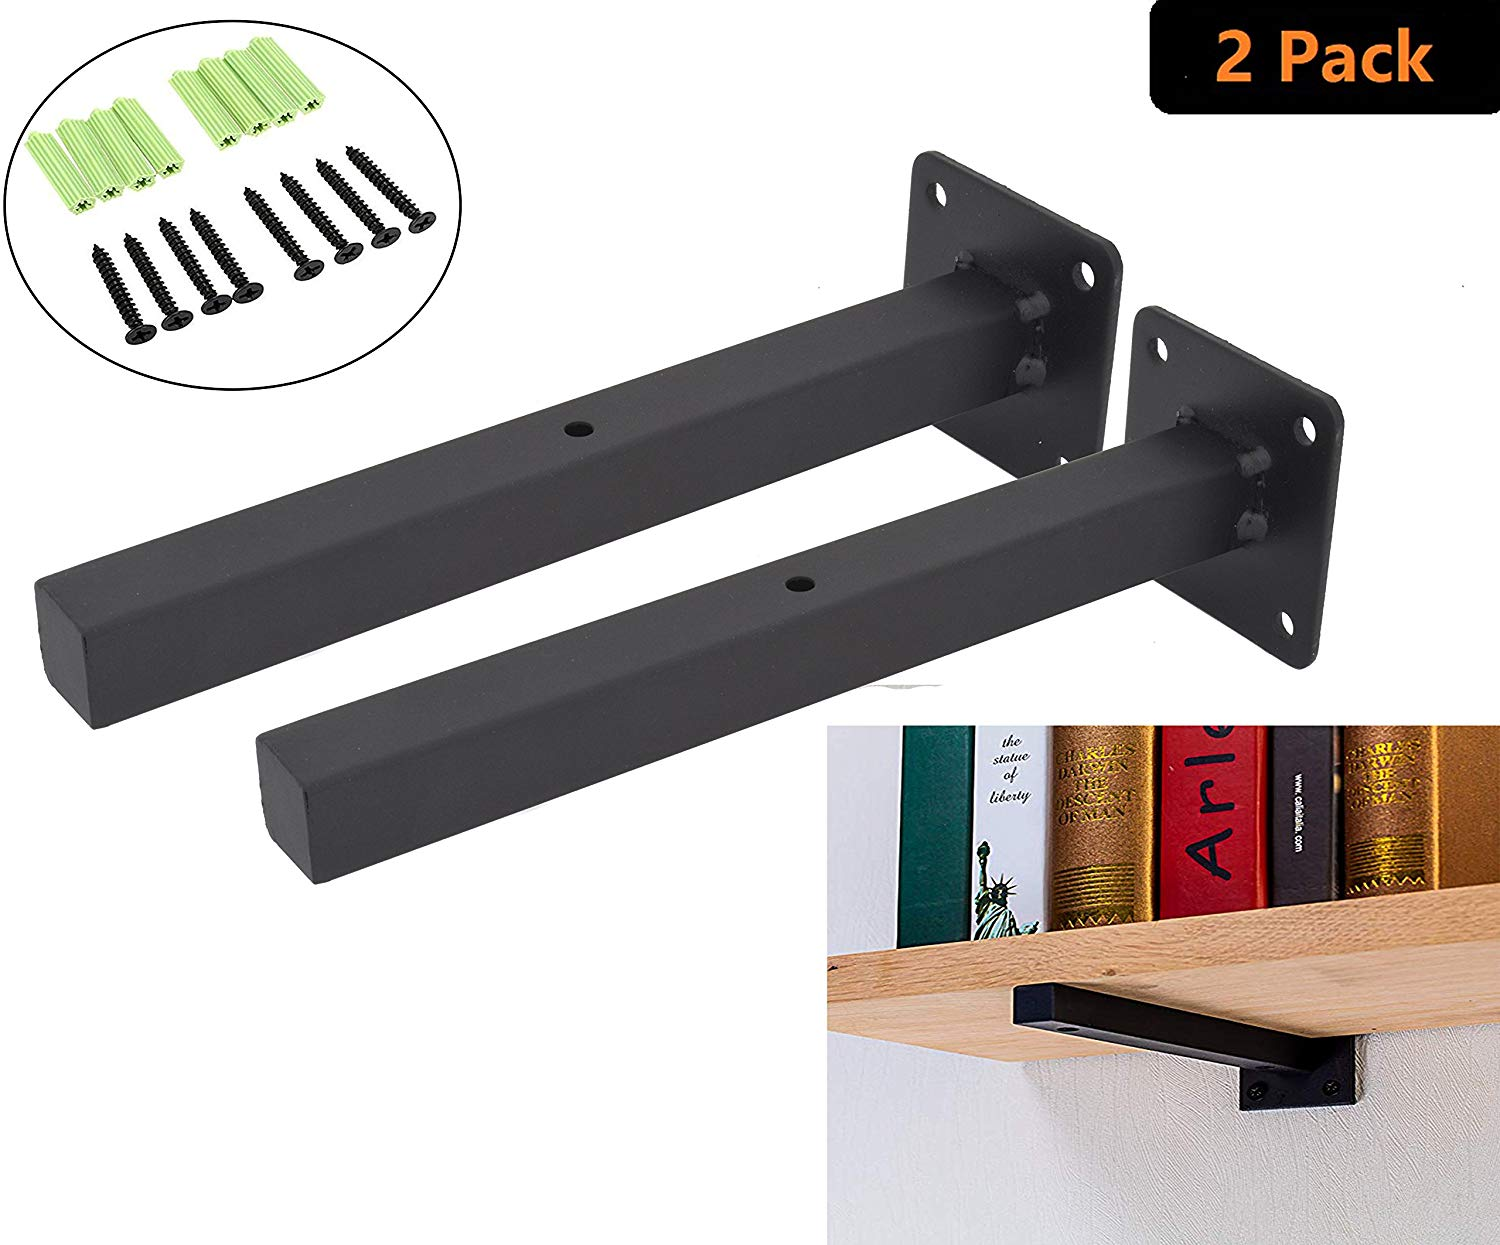 industrial black floating shelf brackets retro wall mounted supports includes screws anchors square inch addgrace home engineered flooring audio component stand ikea behind couch